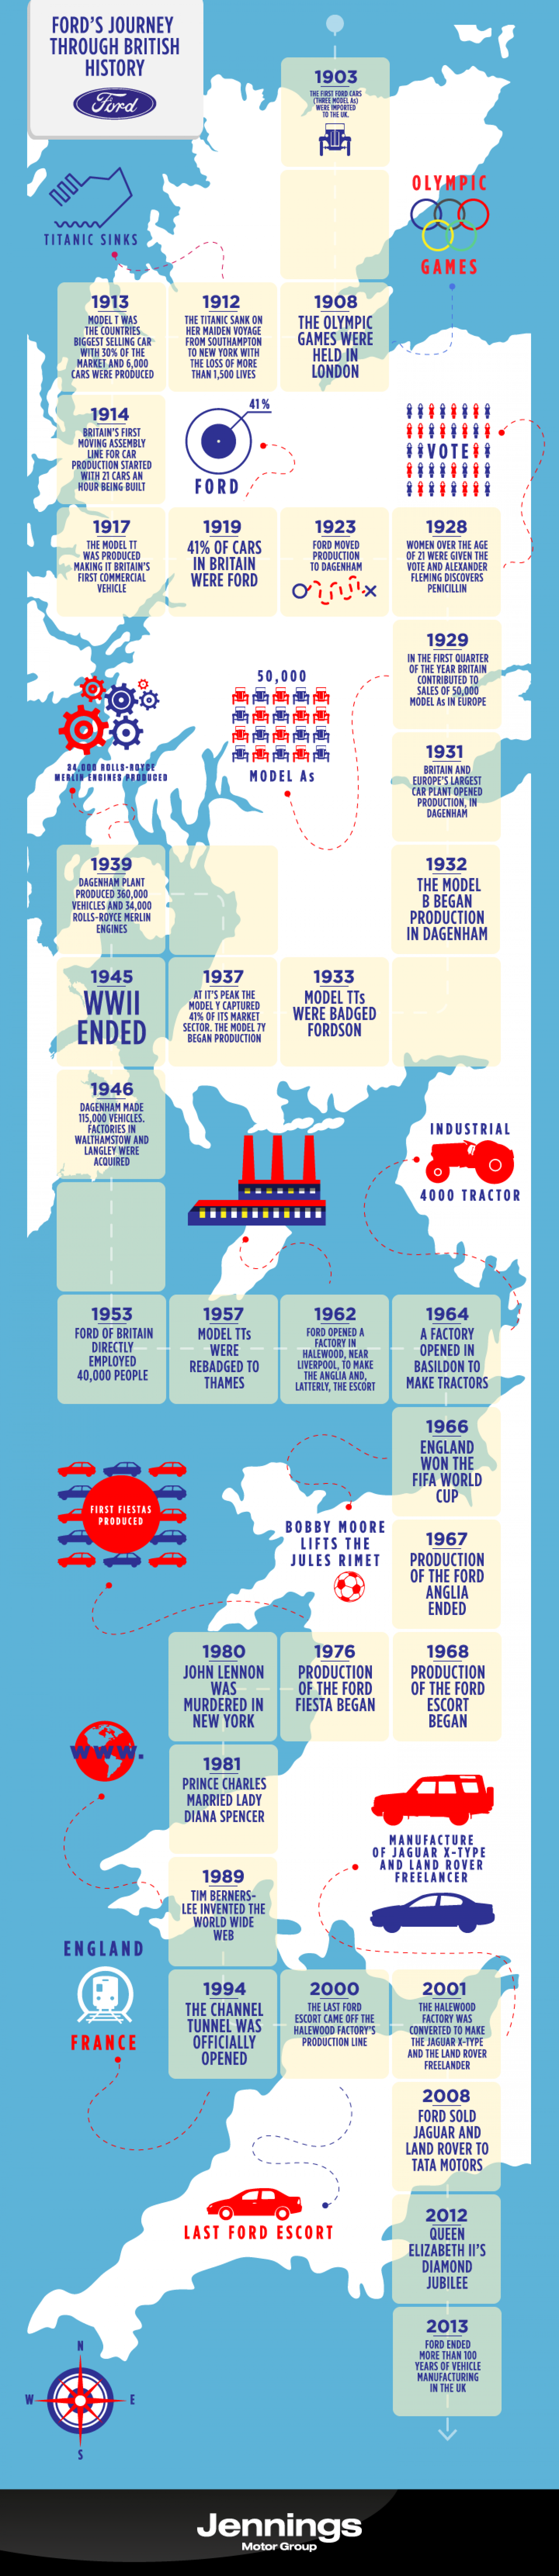 Fords Journey Through British History Infographic